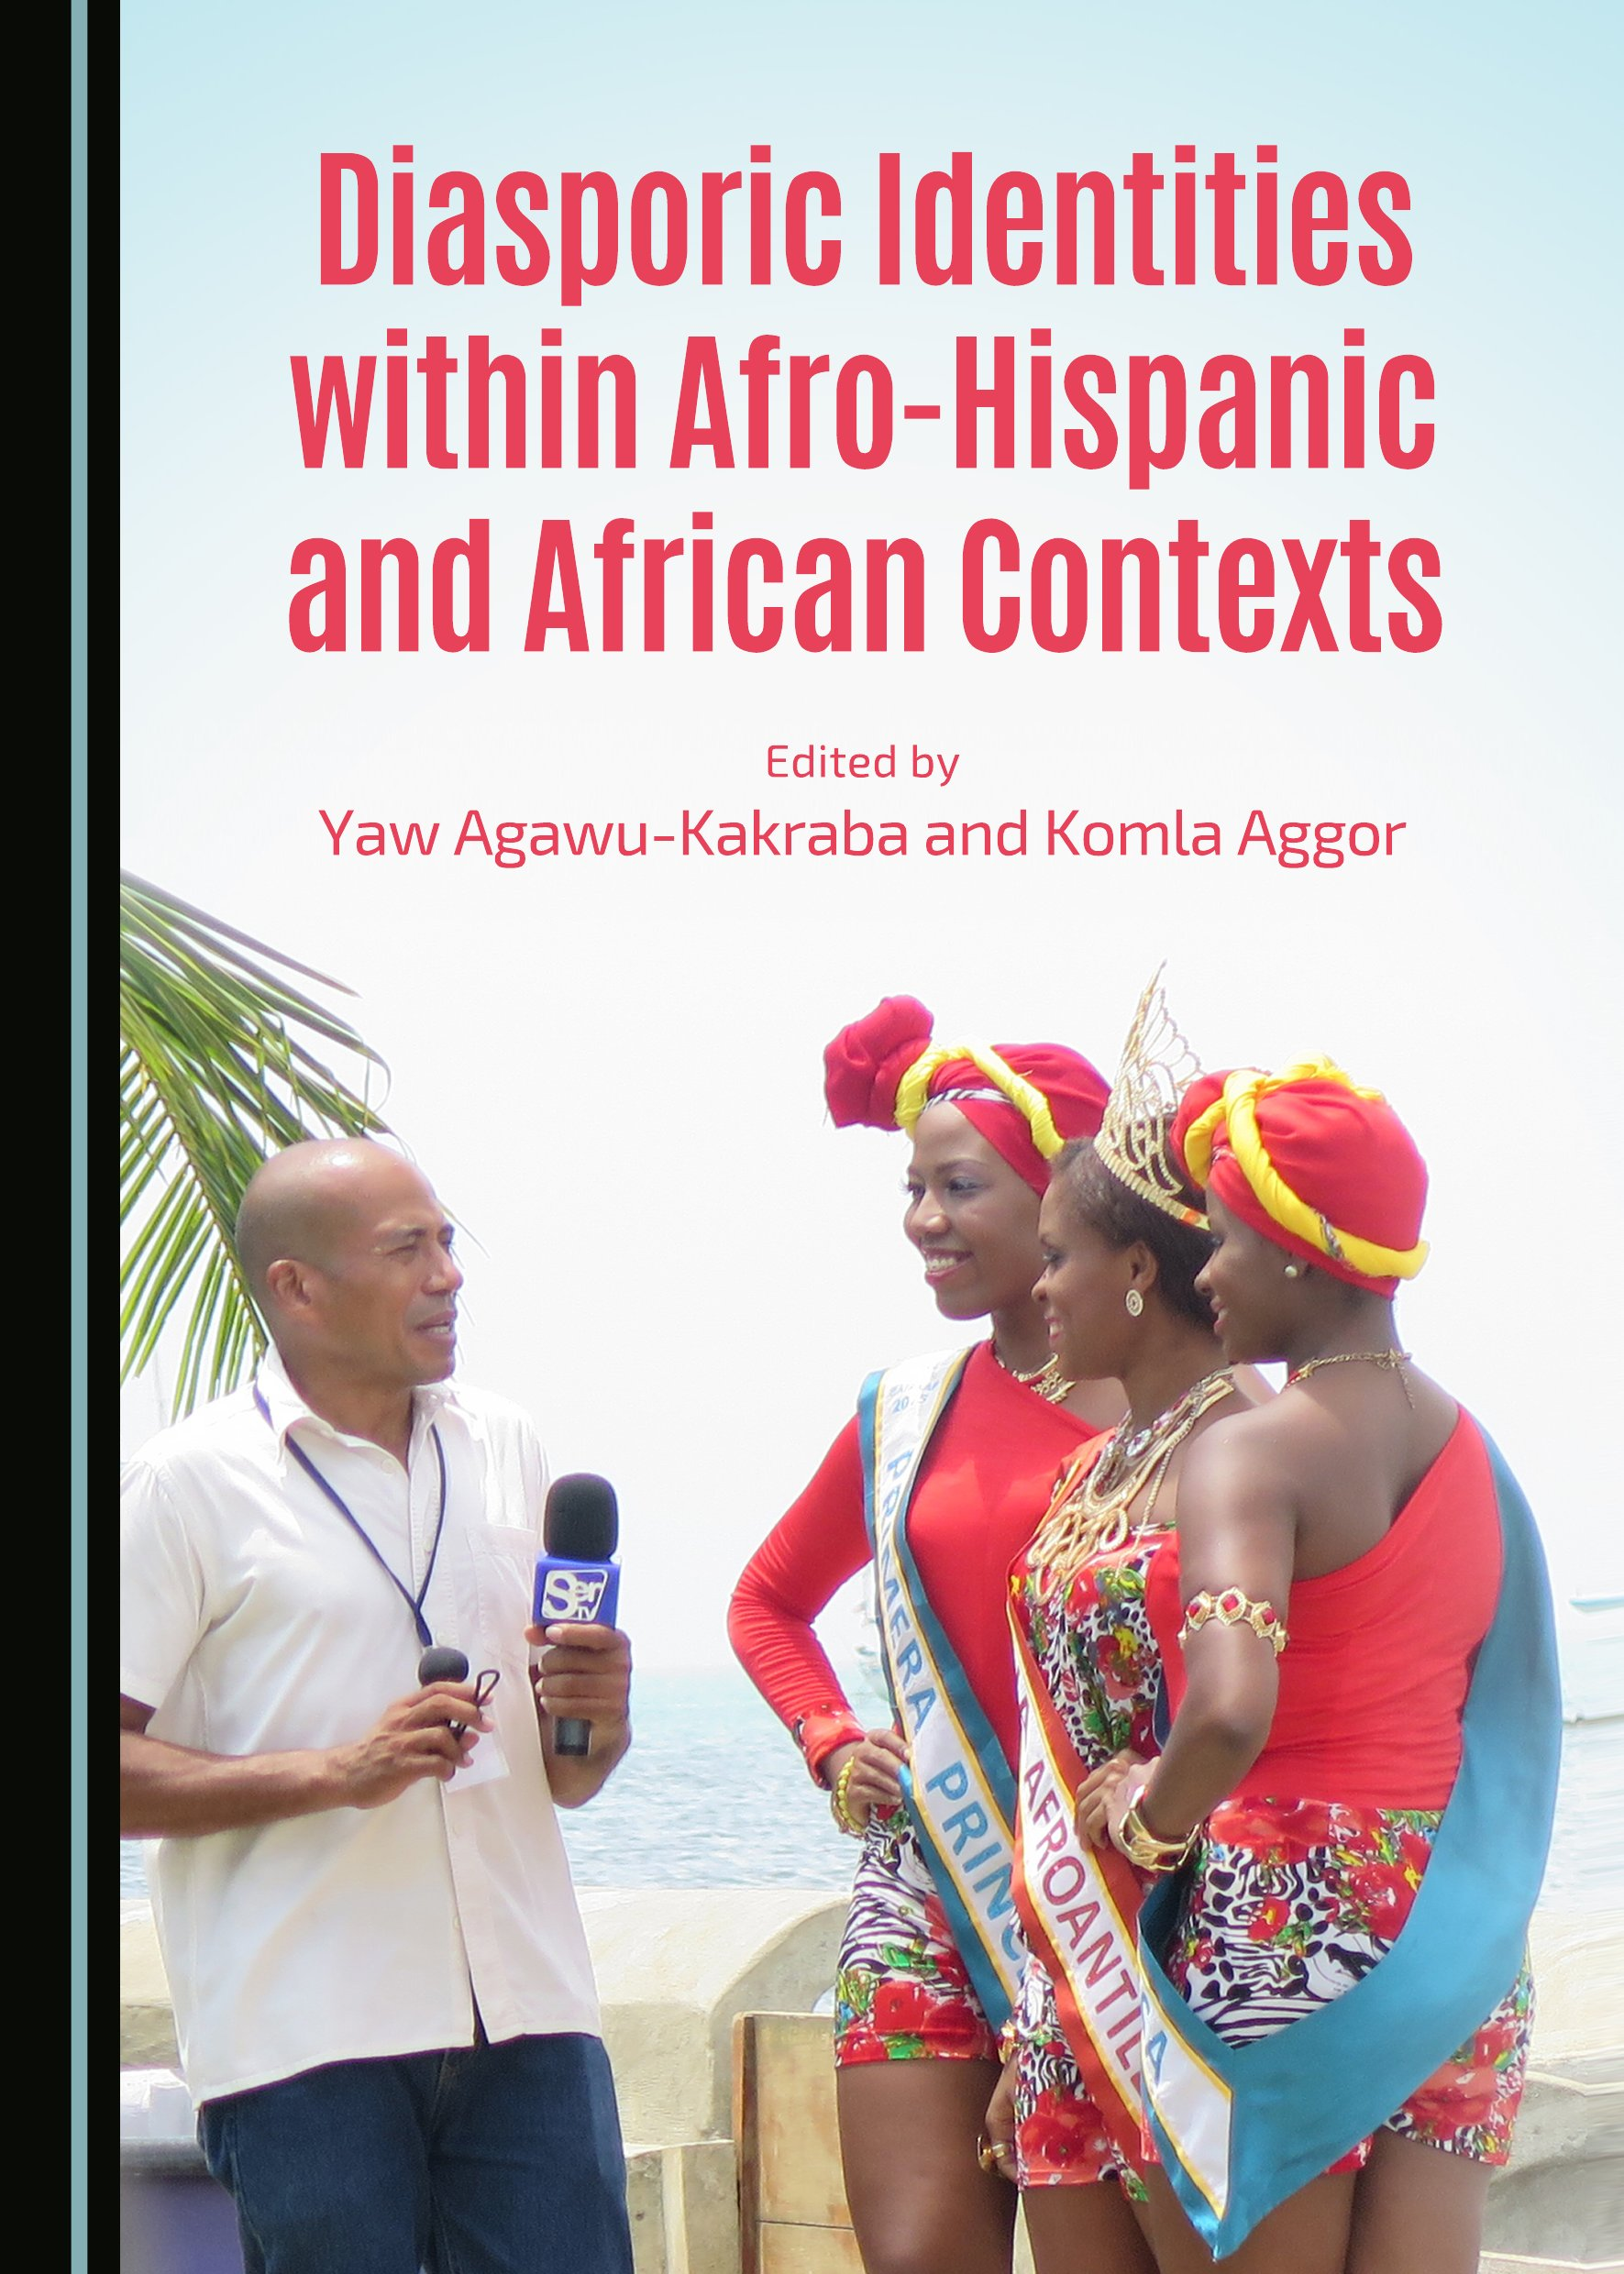 Diasporic Identities within Afro-Hispanic and African Contexts